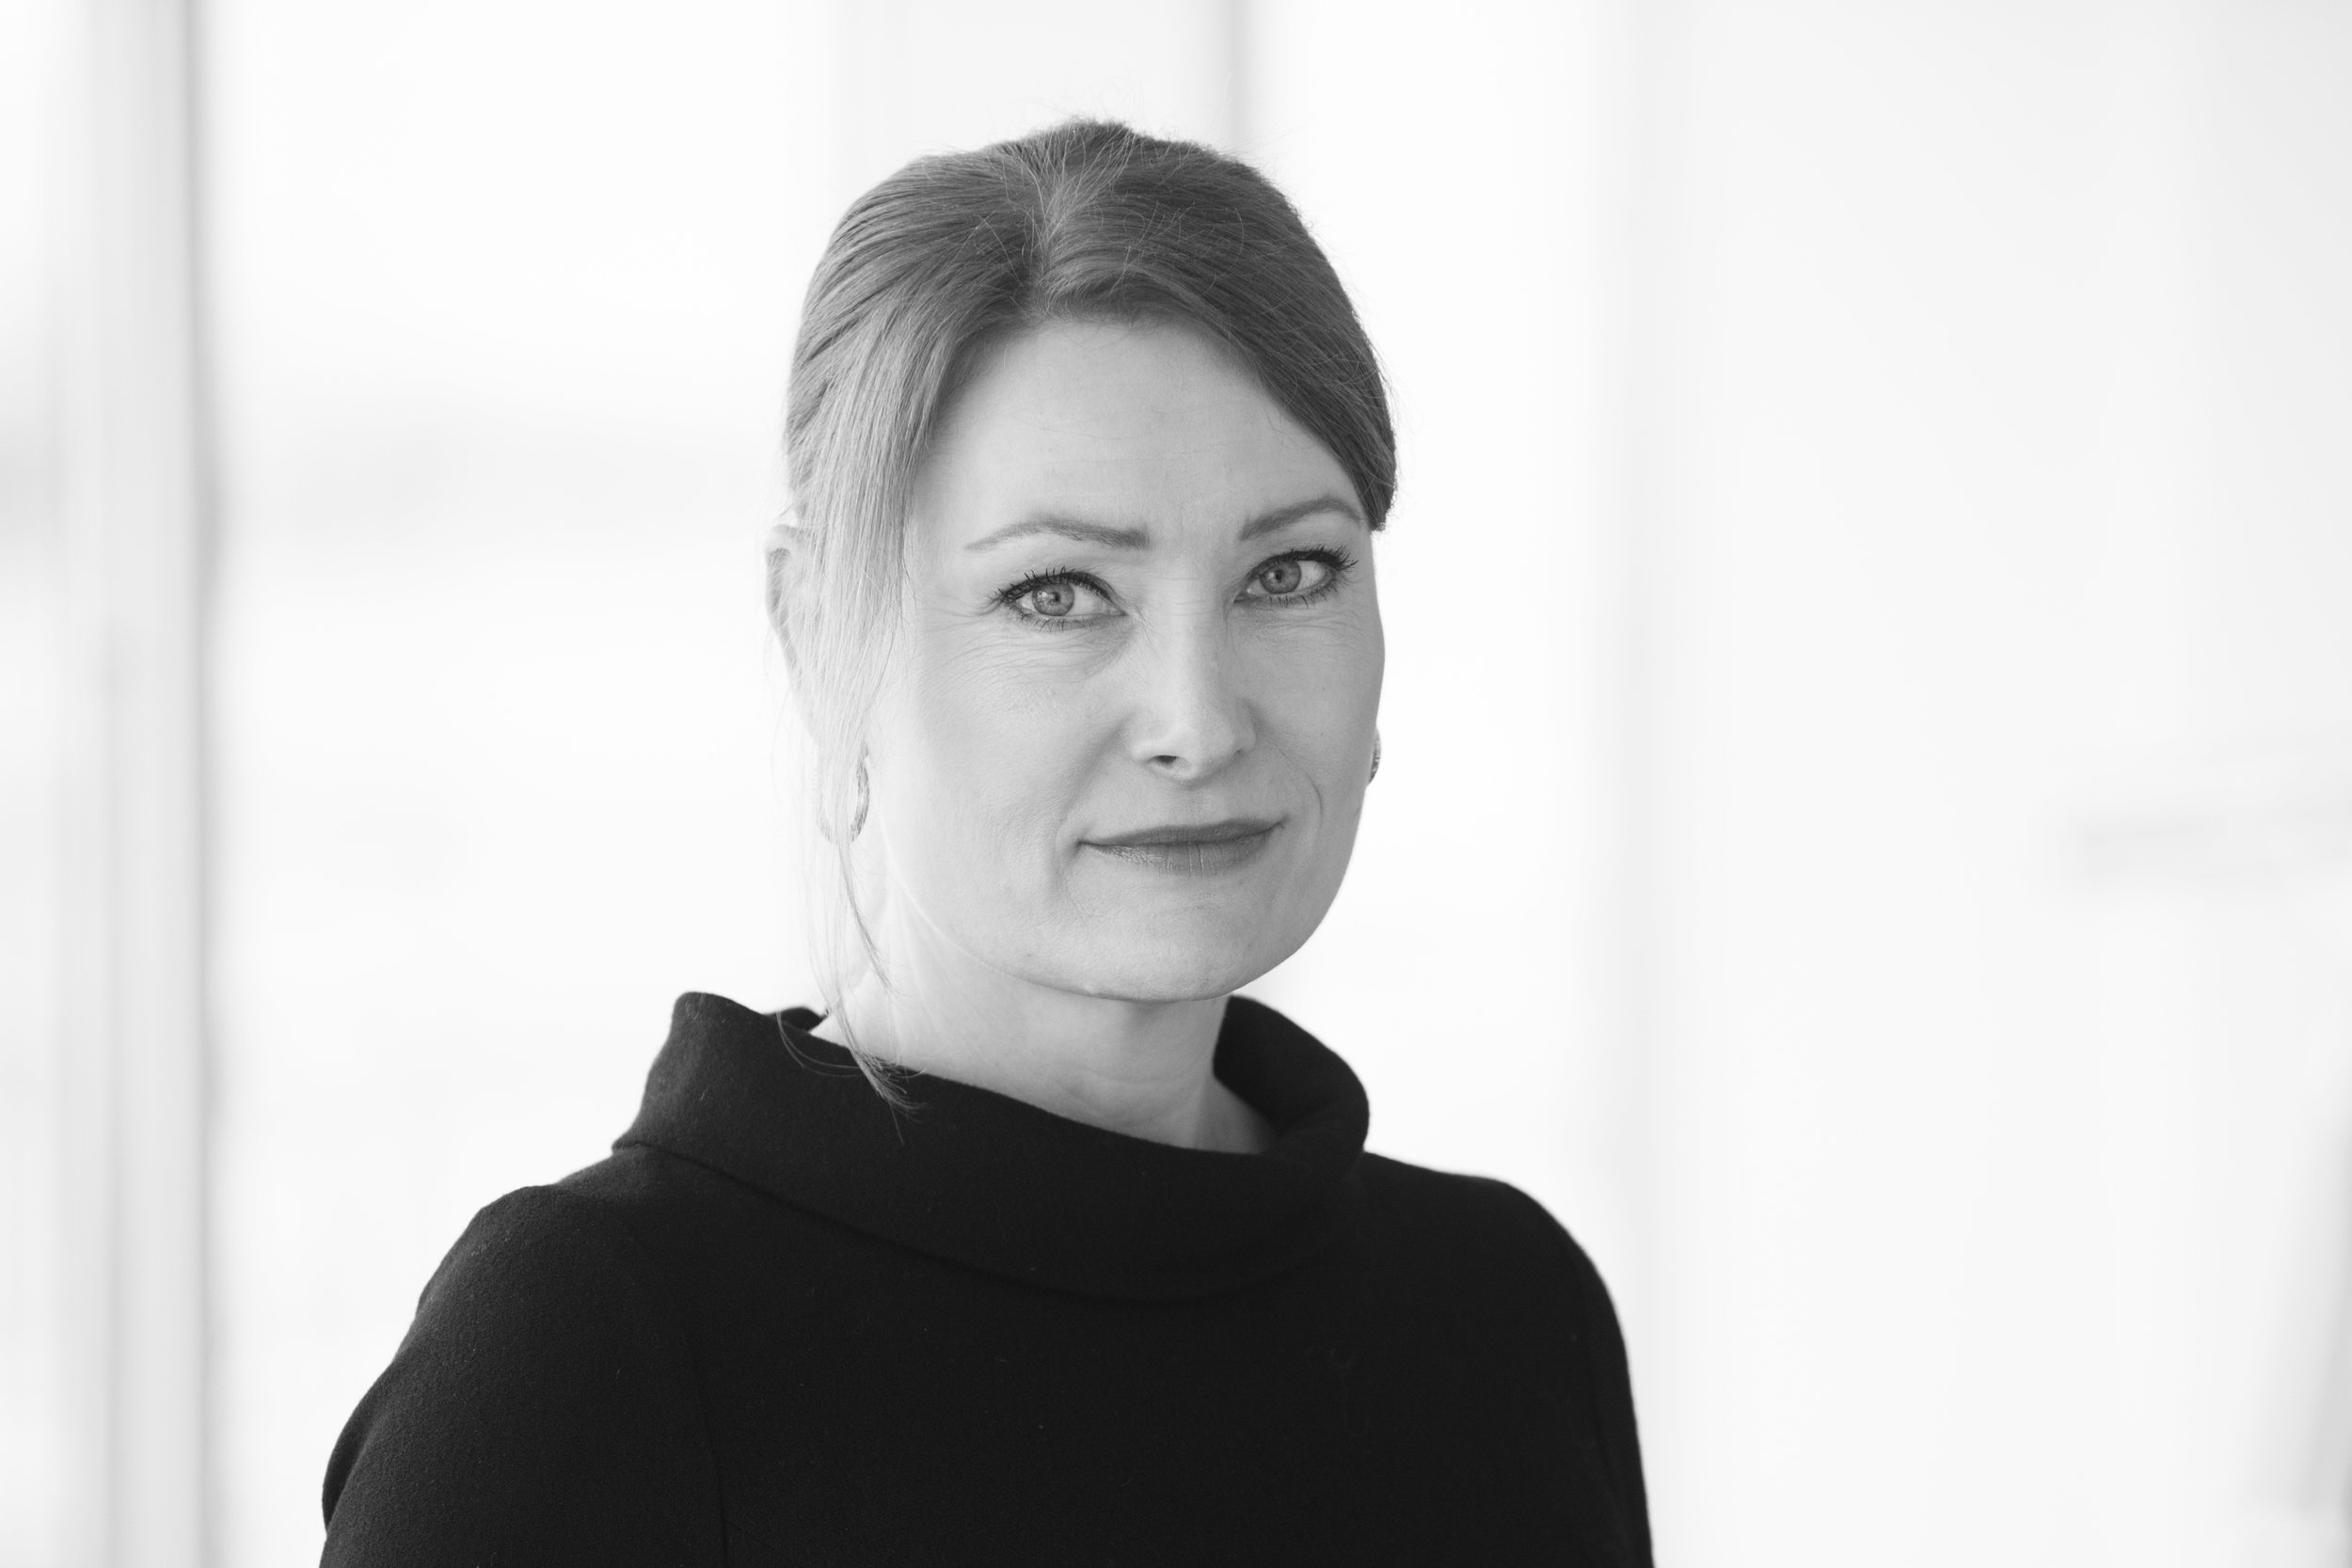 CHARLOTTA KVARNSTRÖM - PartnerInternational background from professional services and management consulting. Previous roles include Managing Director and Partner at Accenture. Read more →+46 (0)70 663 30 20charlotta.kvarnstrom@nordicinterim.com